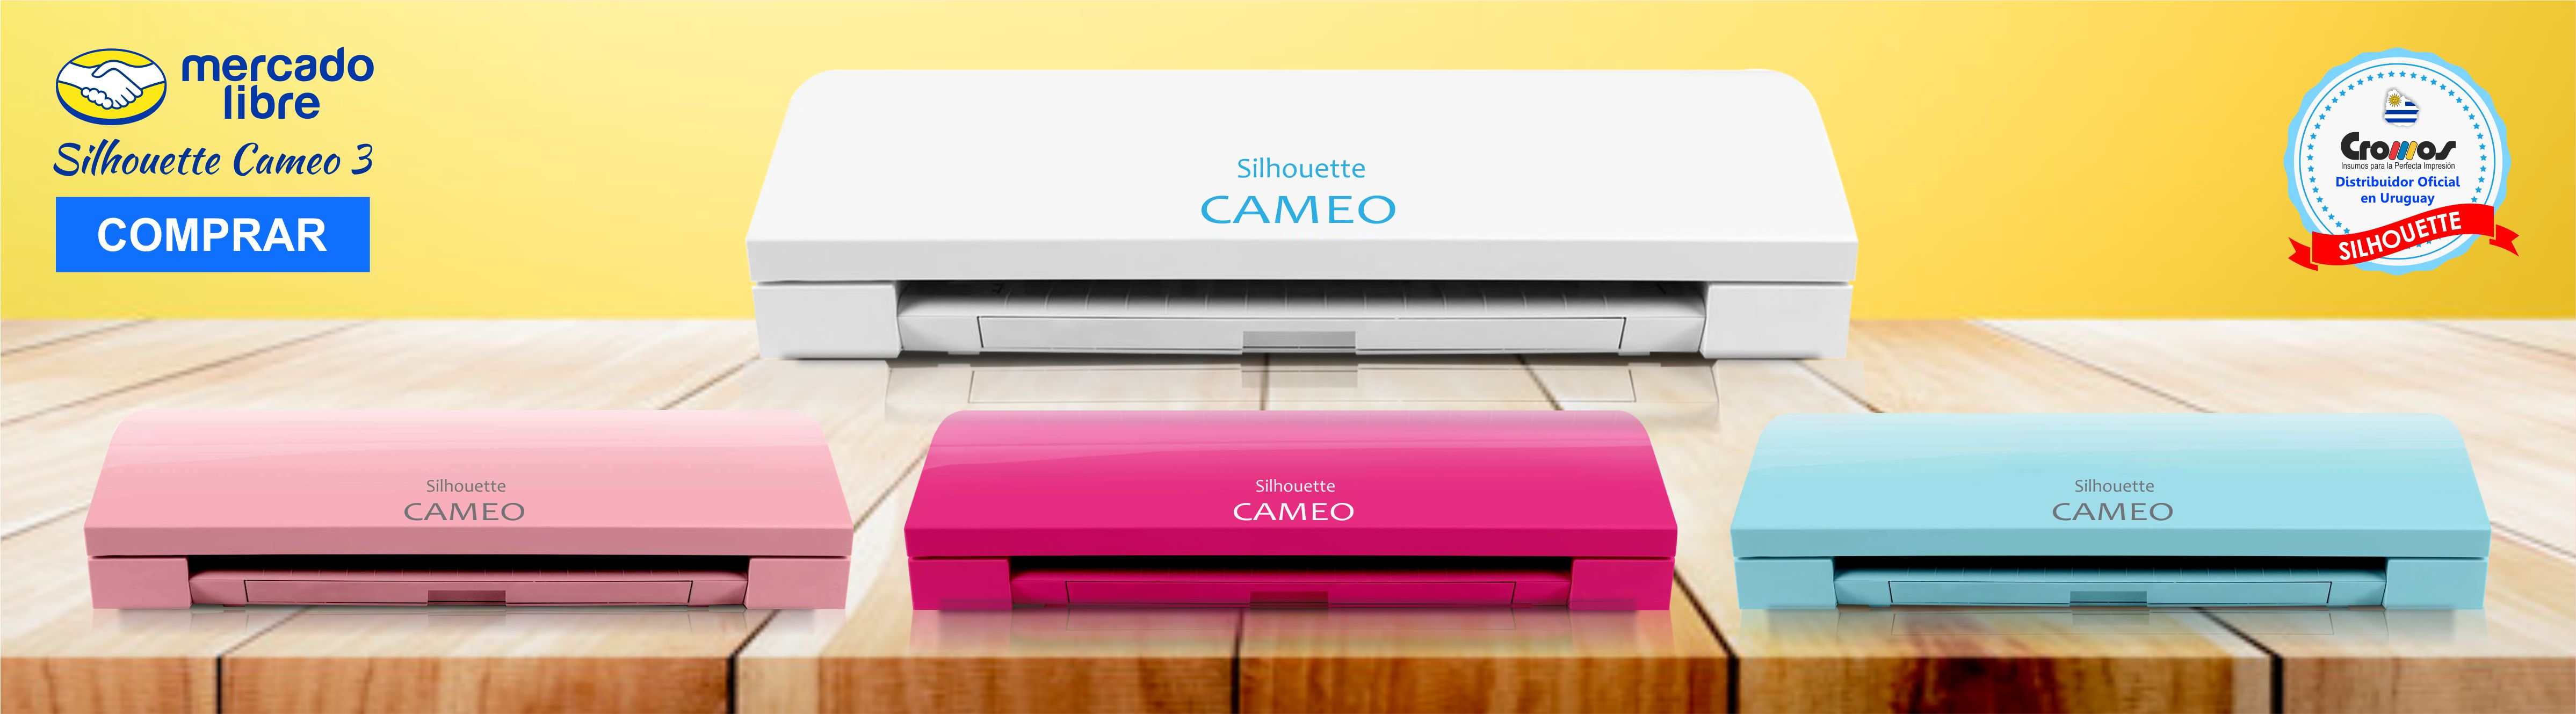 010  Silhouette Cameo 3   Color Series